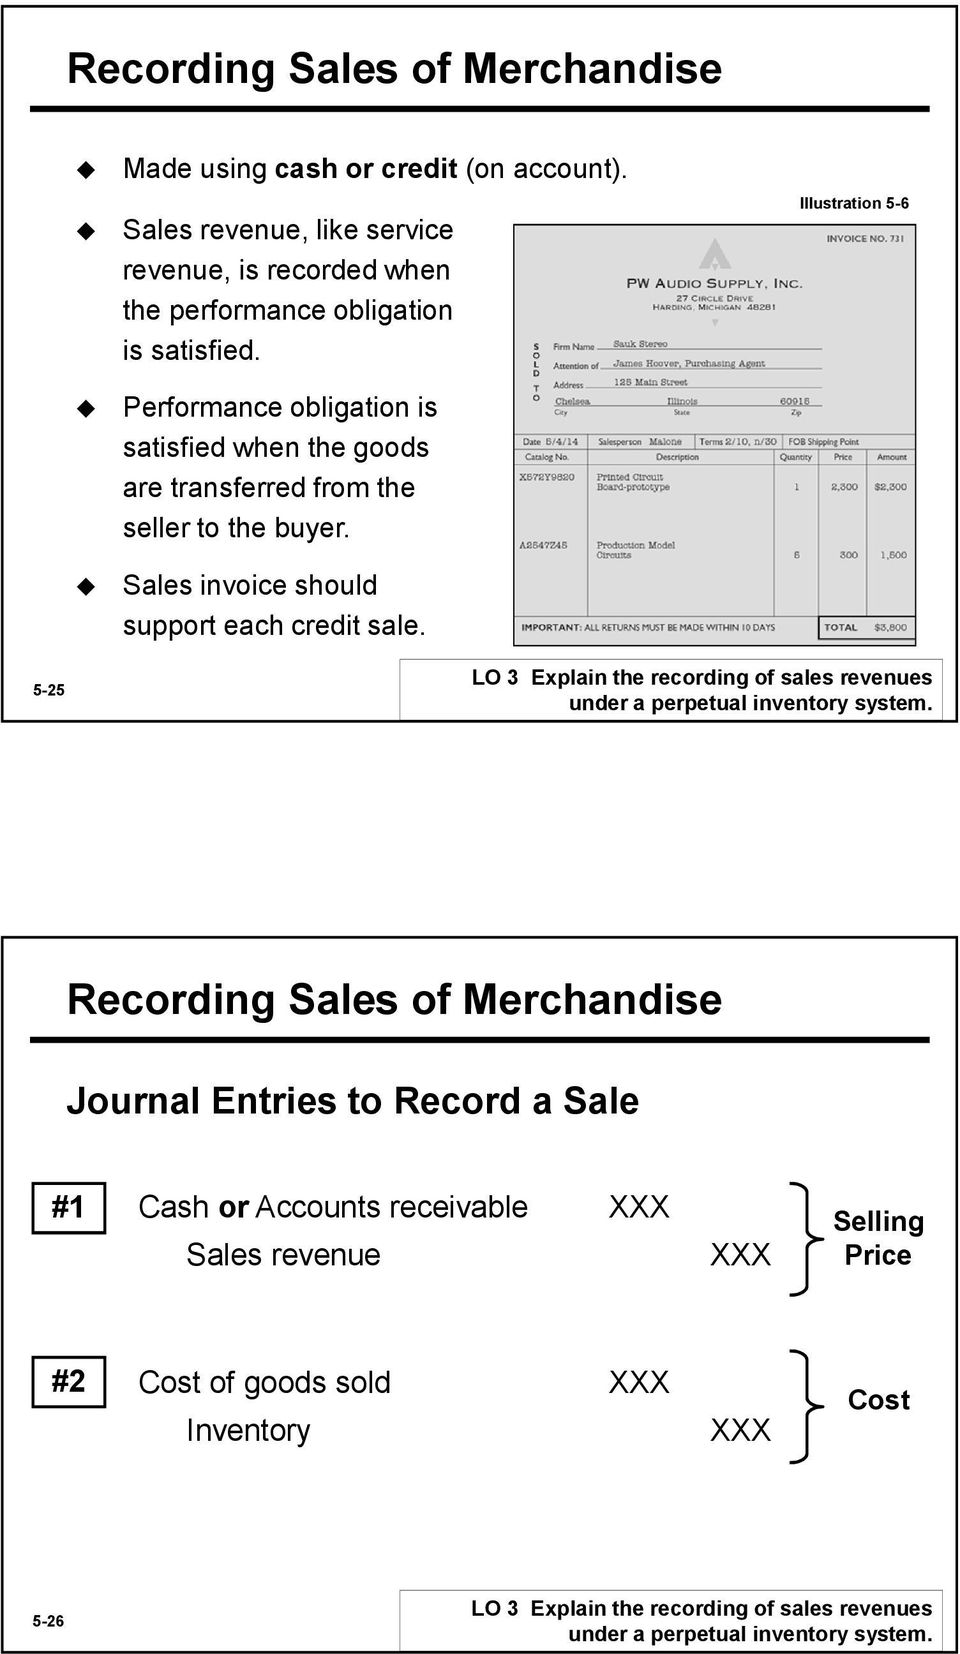 5-25 LO 3 Explain the recording of sales revenues under a perpetual inventory system.